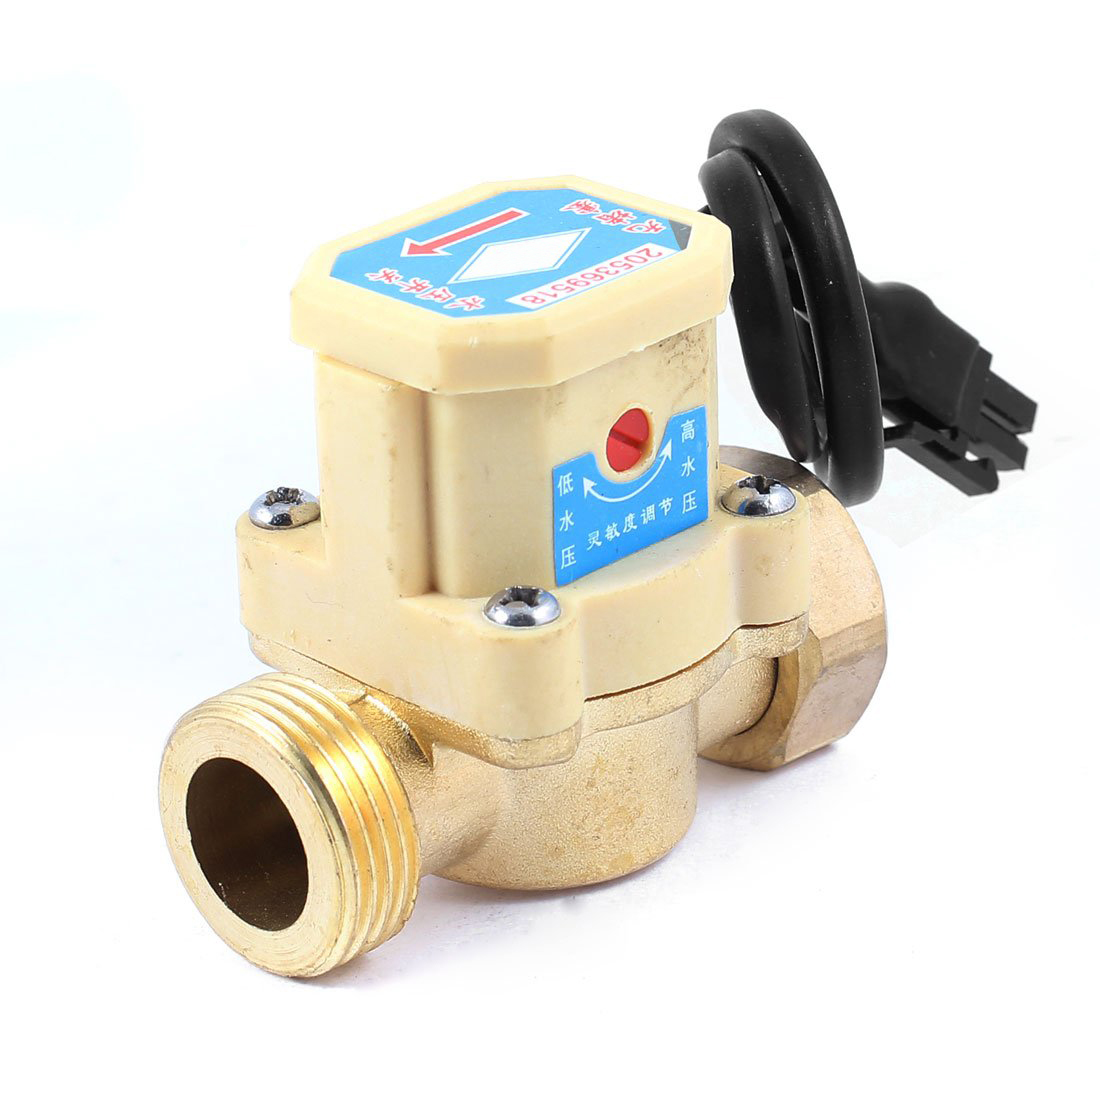 KSOL New Style 26mm 3/4 PT Thread Connector 120W Pump Water Flow Sensor Switch mj db20 g3 4 cooper material with high accuracy water flow sensor for splar water heater heat pump and chiller flow switch